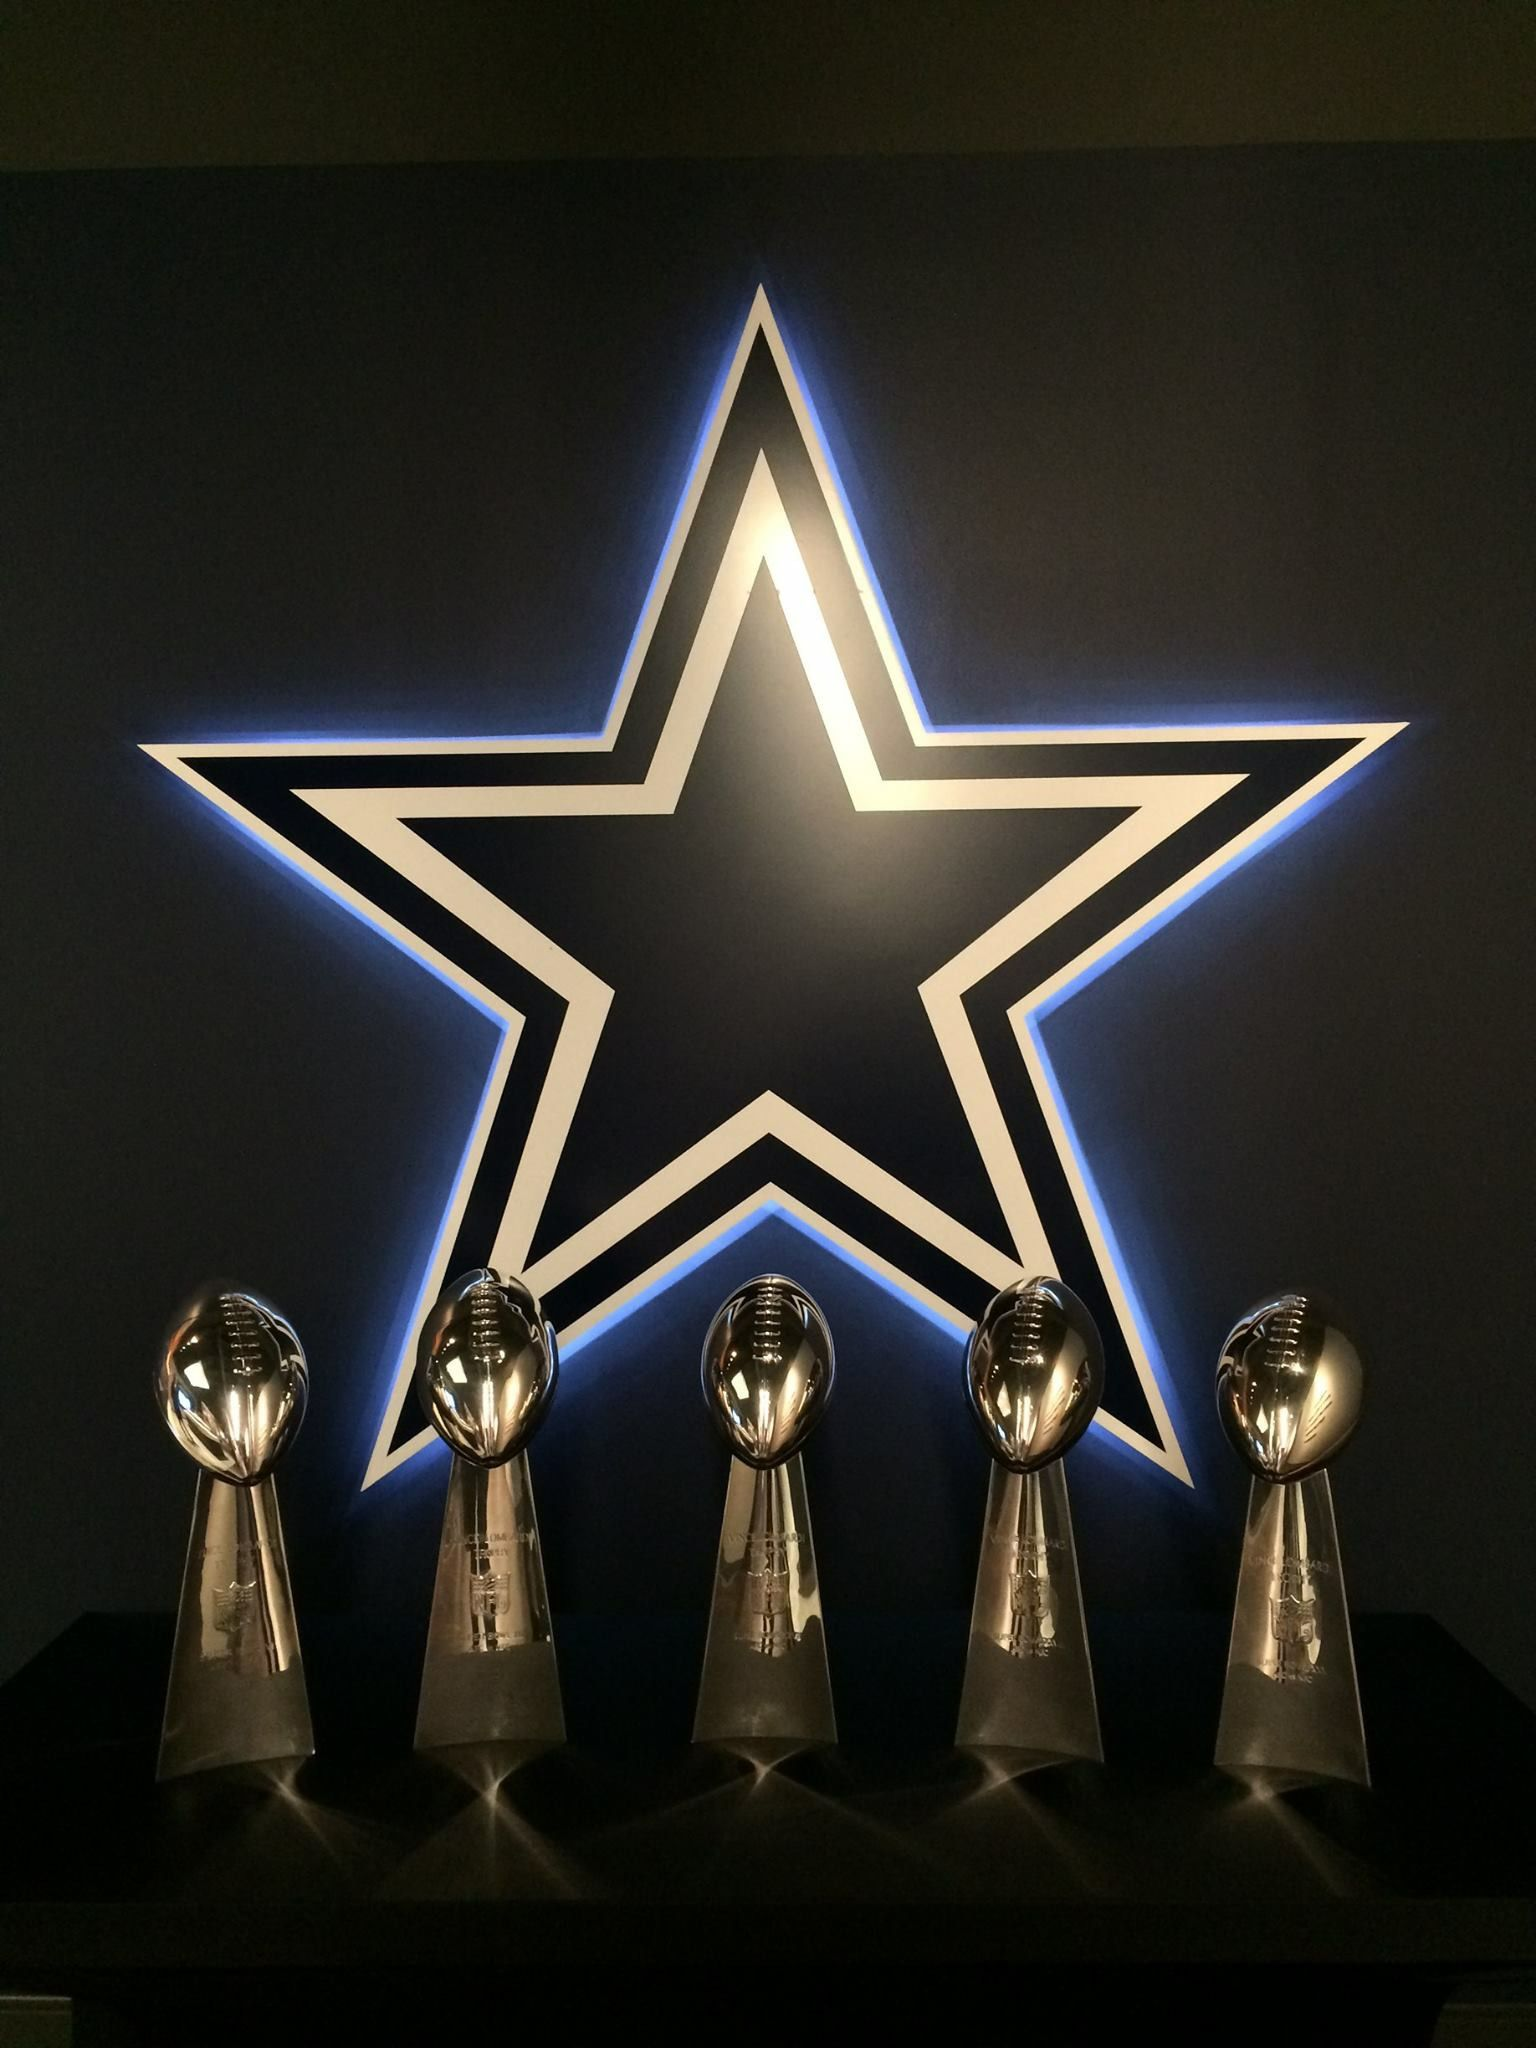 Pin by Anthony Cunningham on Cowboys | Dallas cowboys ...